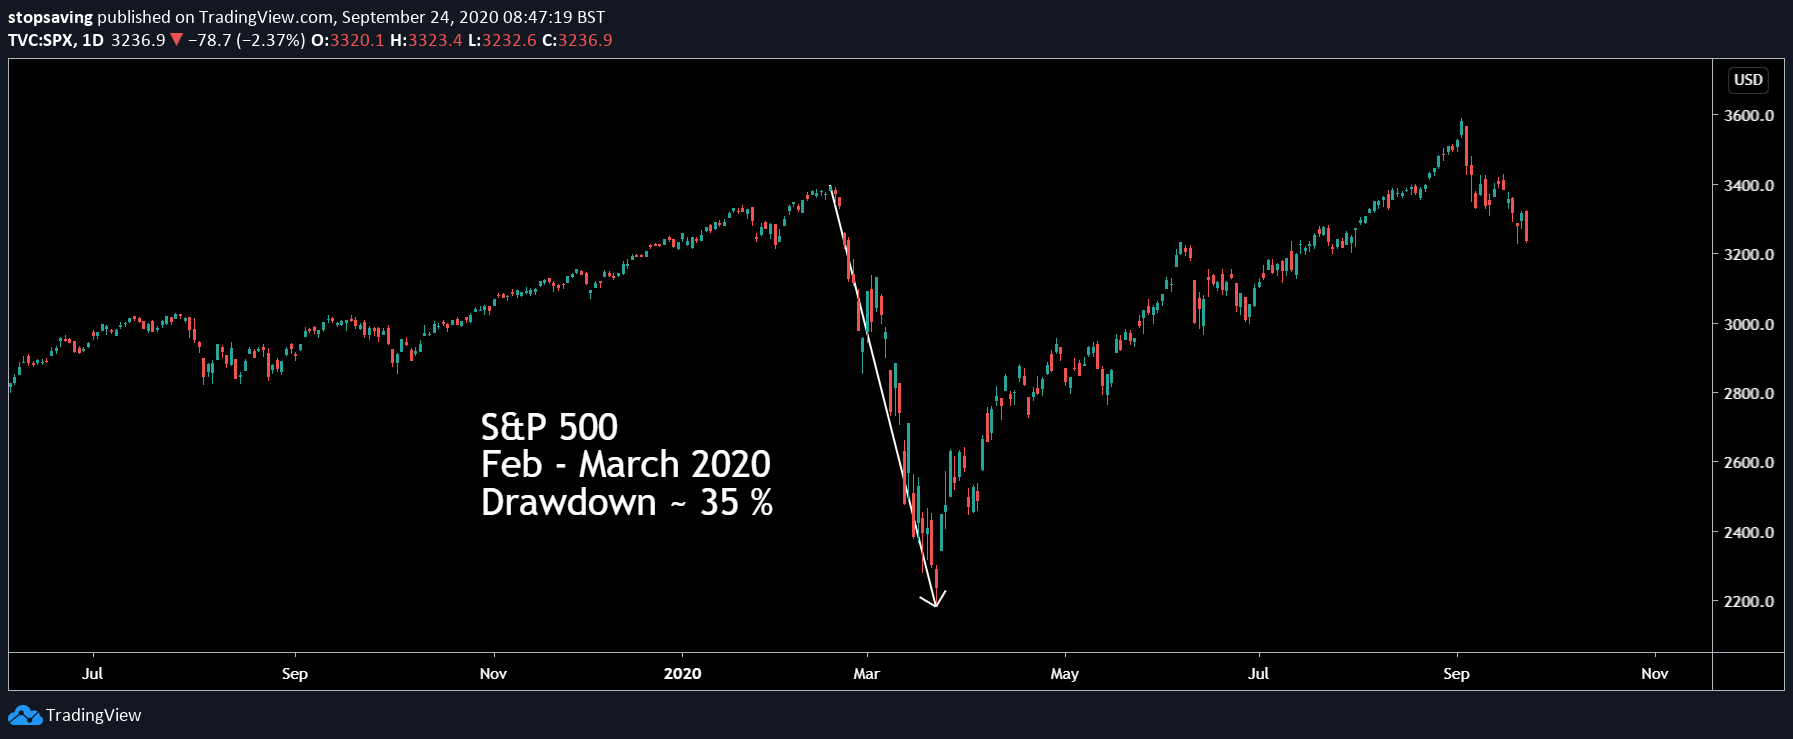 Chart showing the loss of the S&P 500